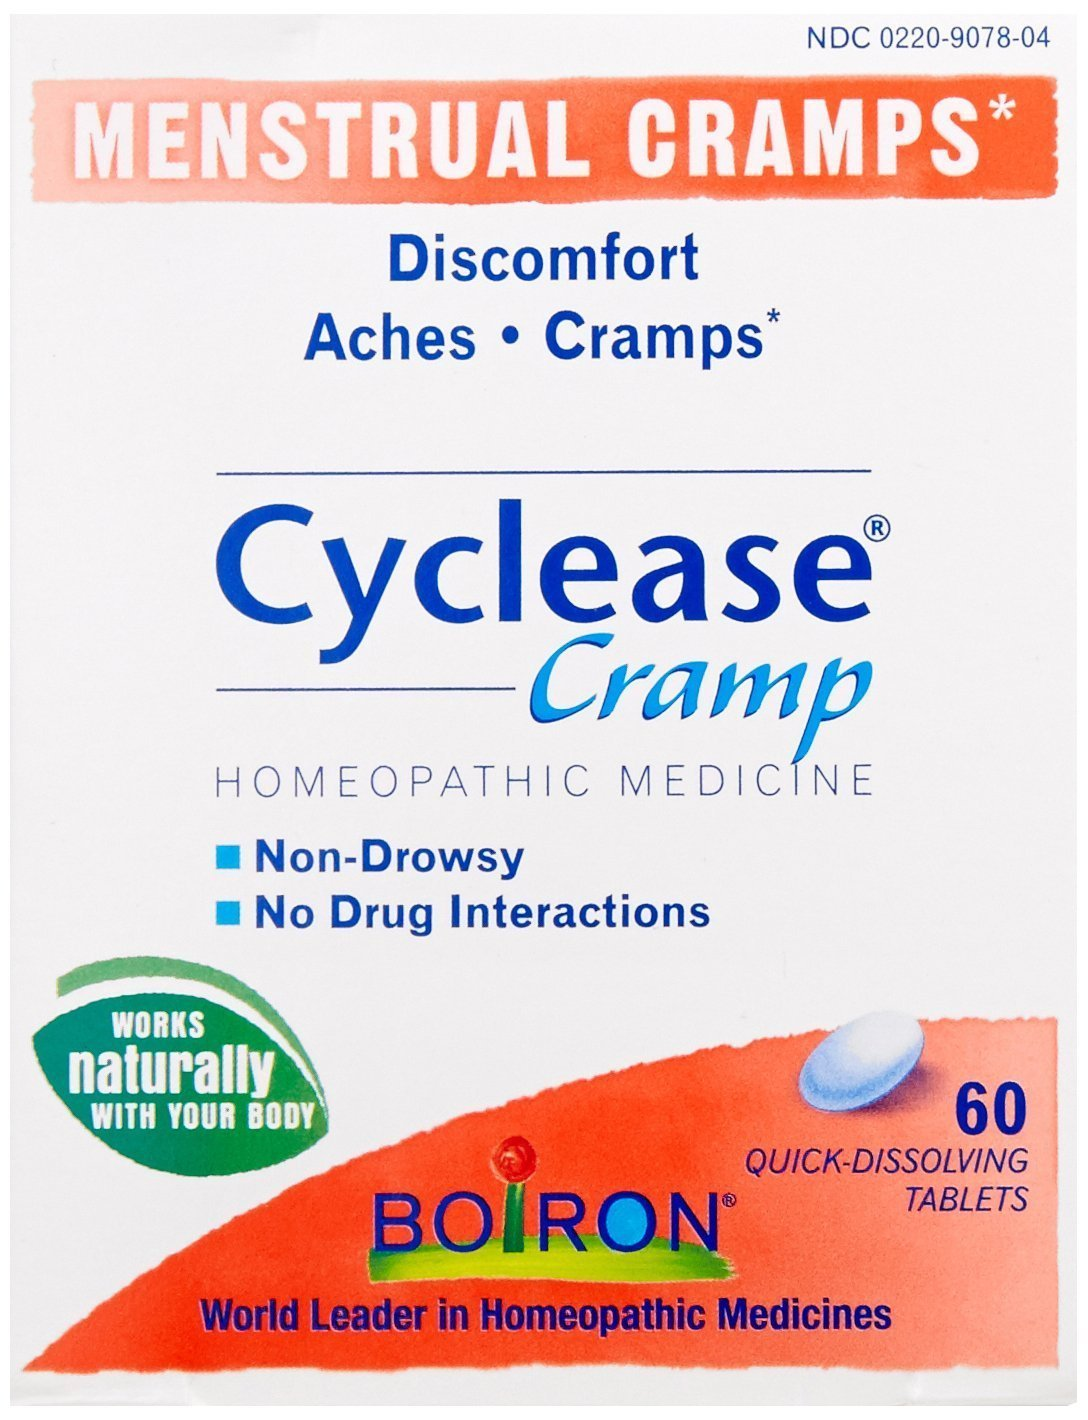 Boiron Cyclease Cramps, 60 Tablets, Homeopathic Medicine for Cramp Relief (Pack of 3)